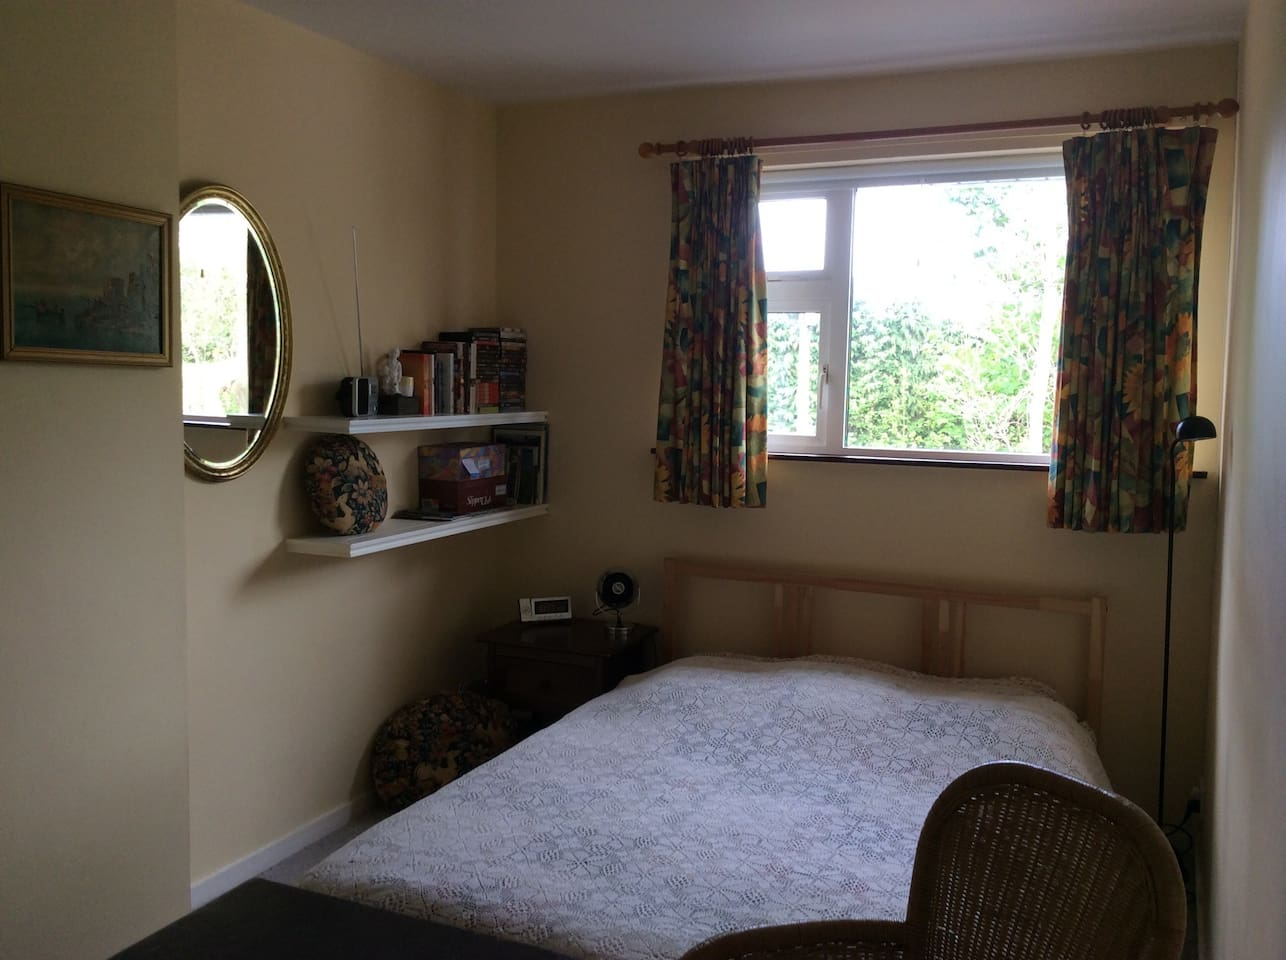 A bright room with a double bed